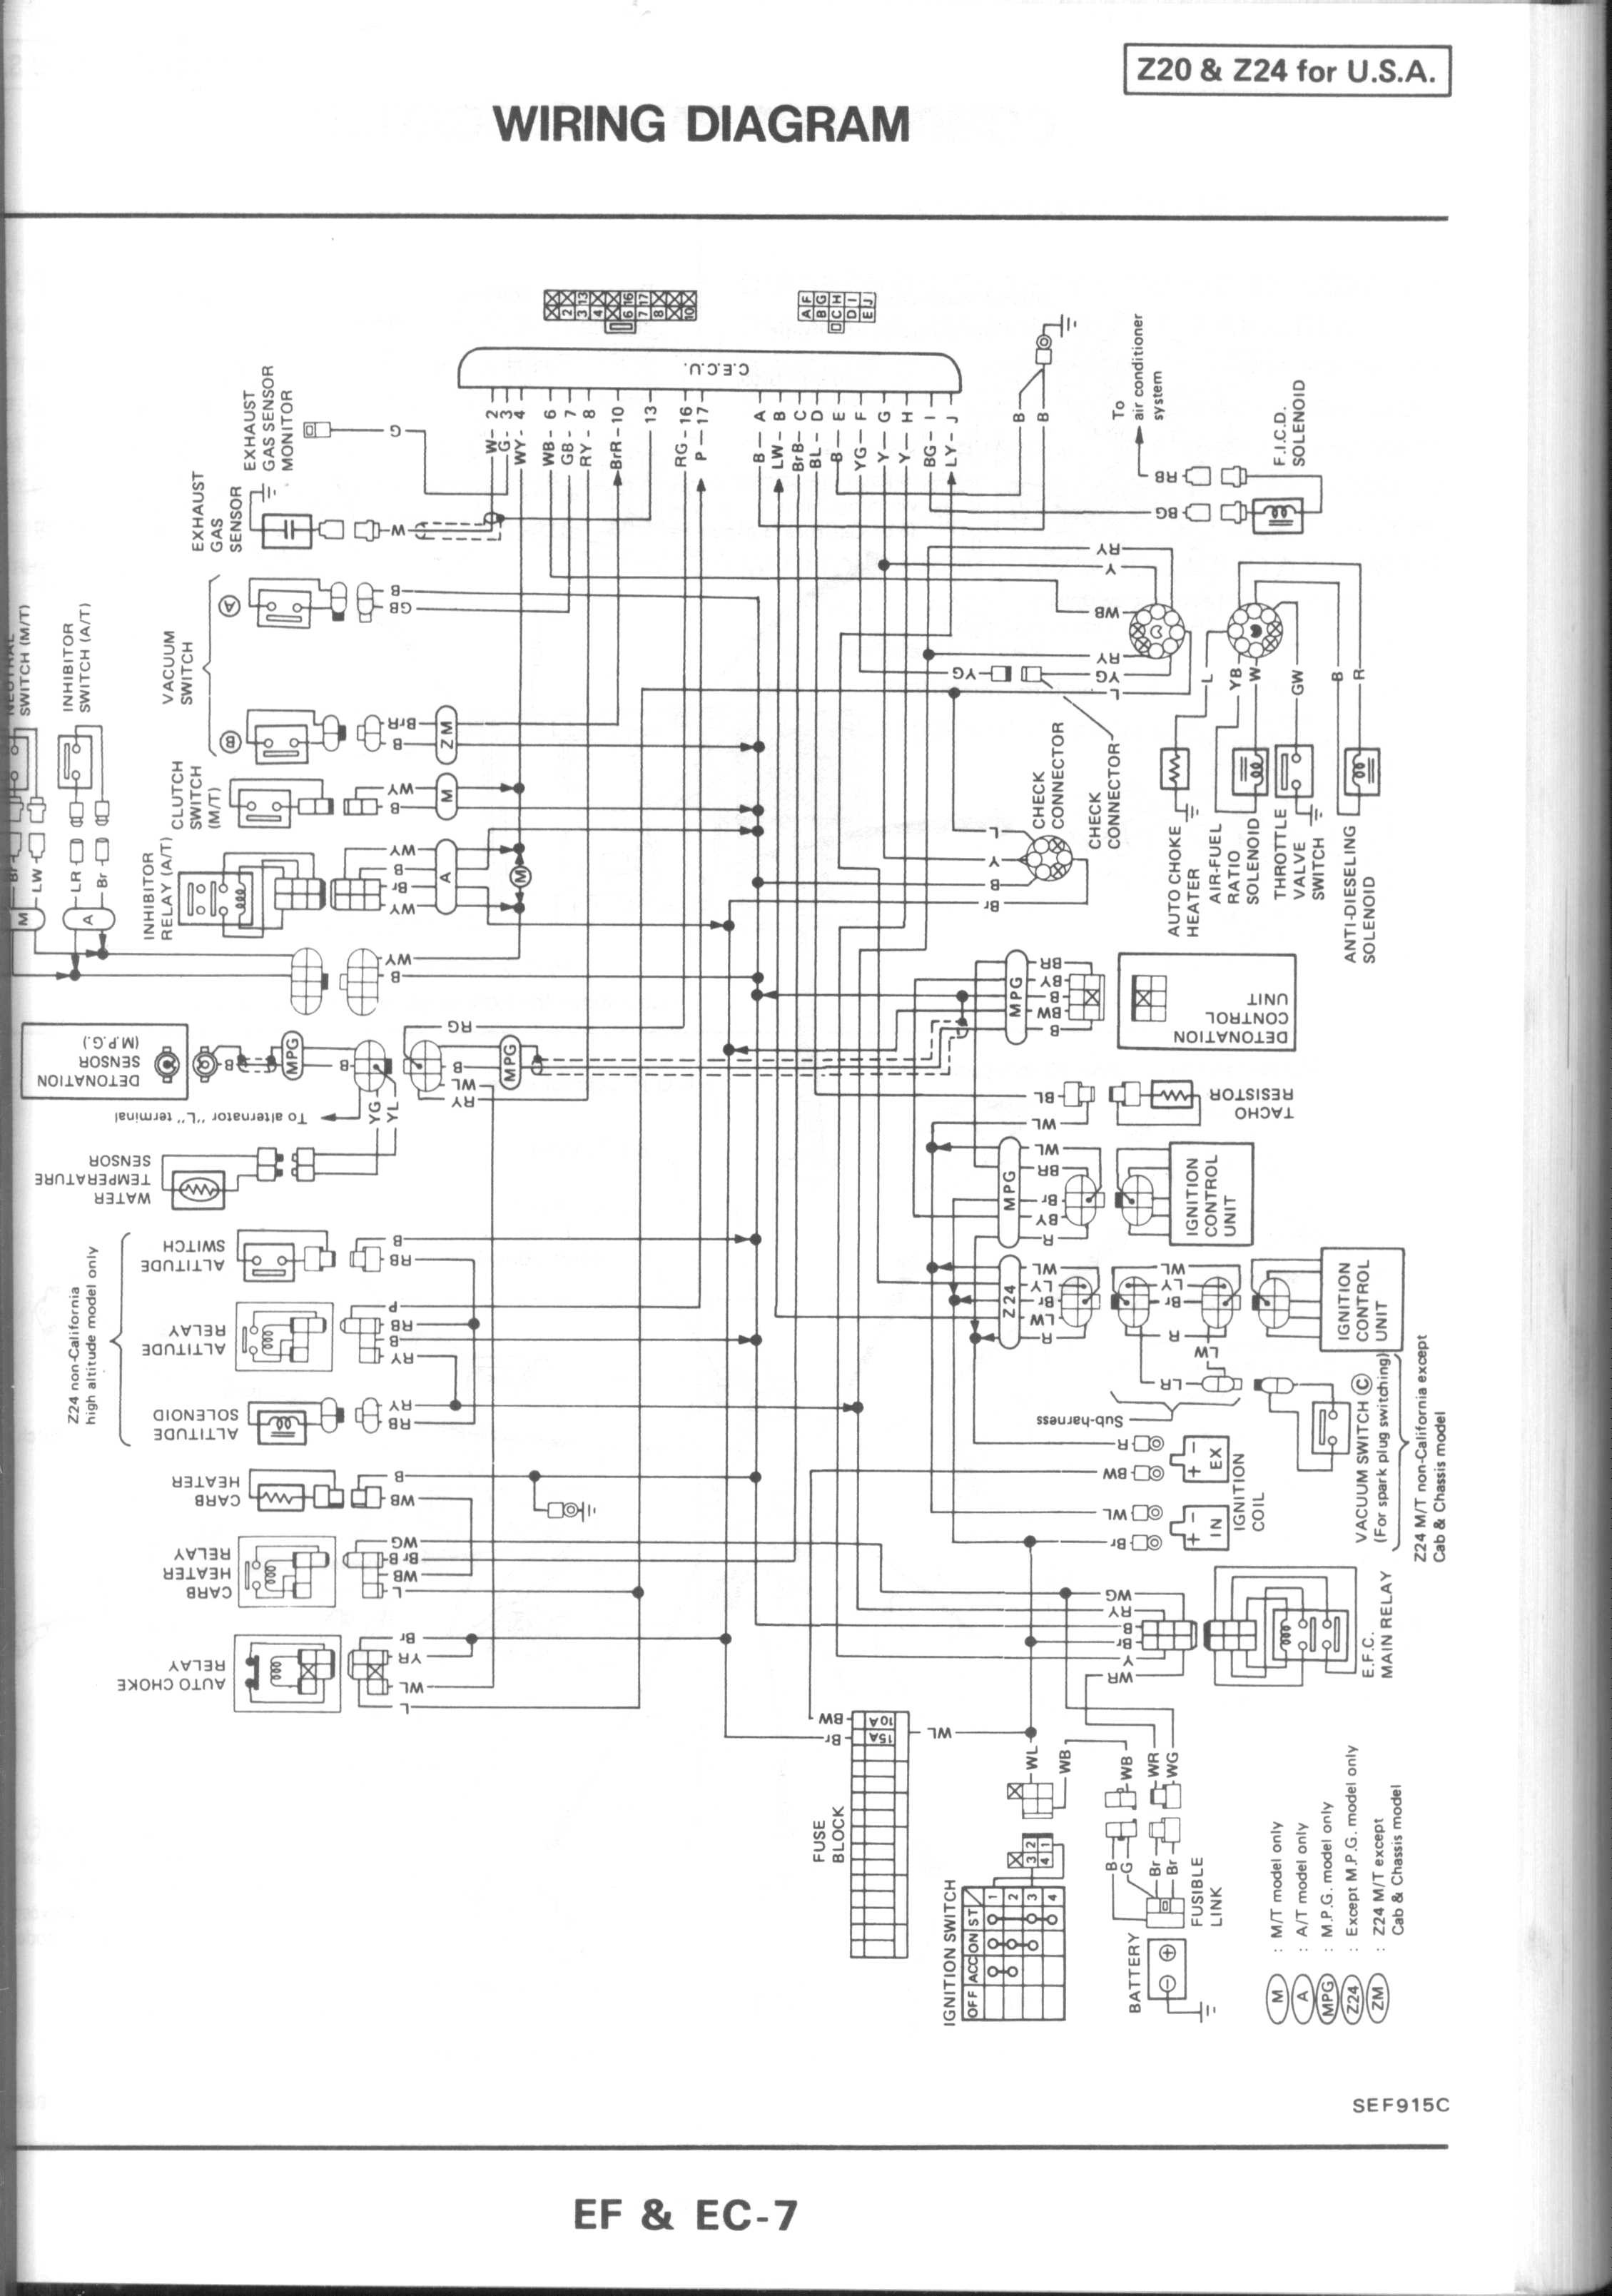 1994 nissan sentra engine diagram 1987 nissan z24 pickup wiring rh detoxicrecenze com nissan d21 electrical diagram nissan d21 headlight wiring diagram